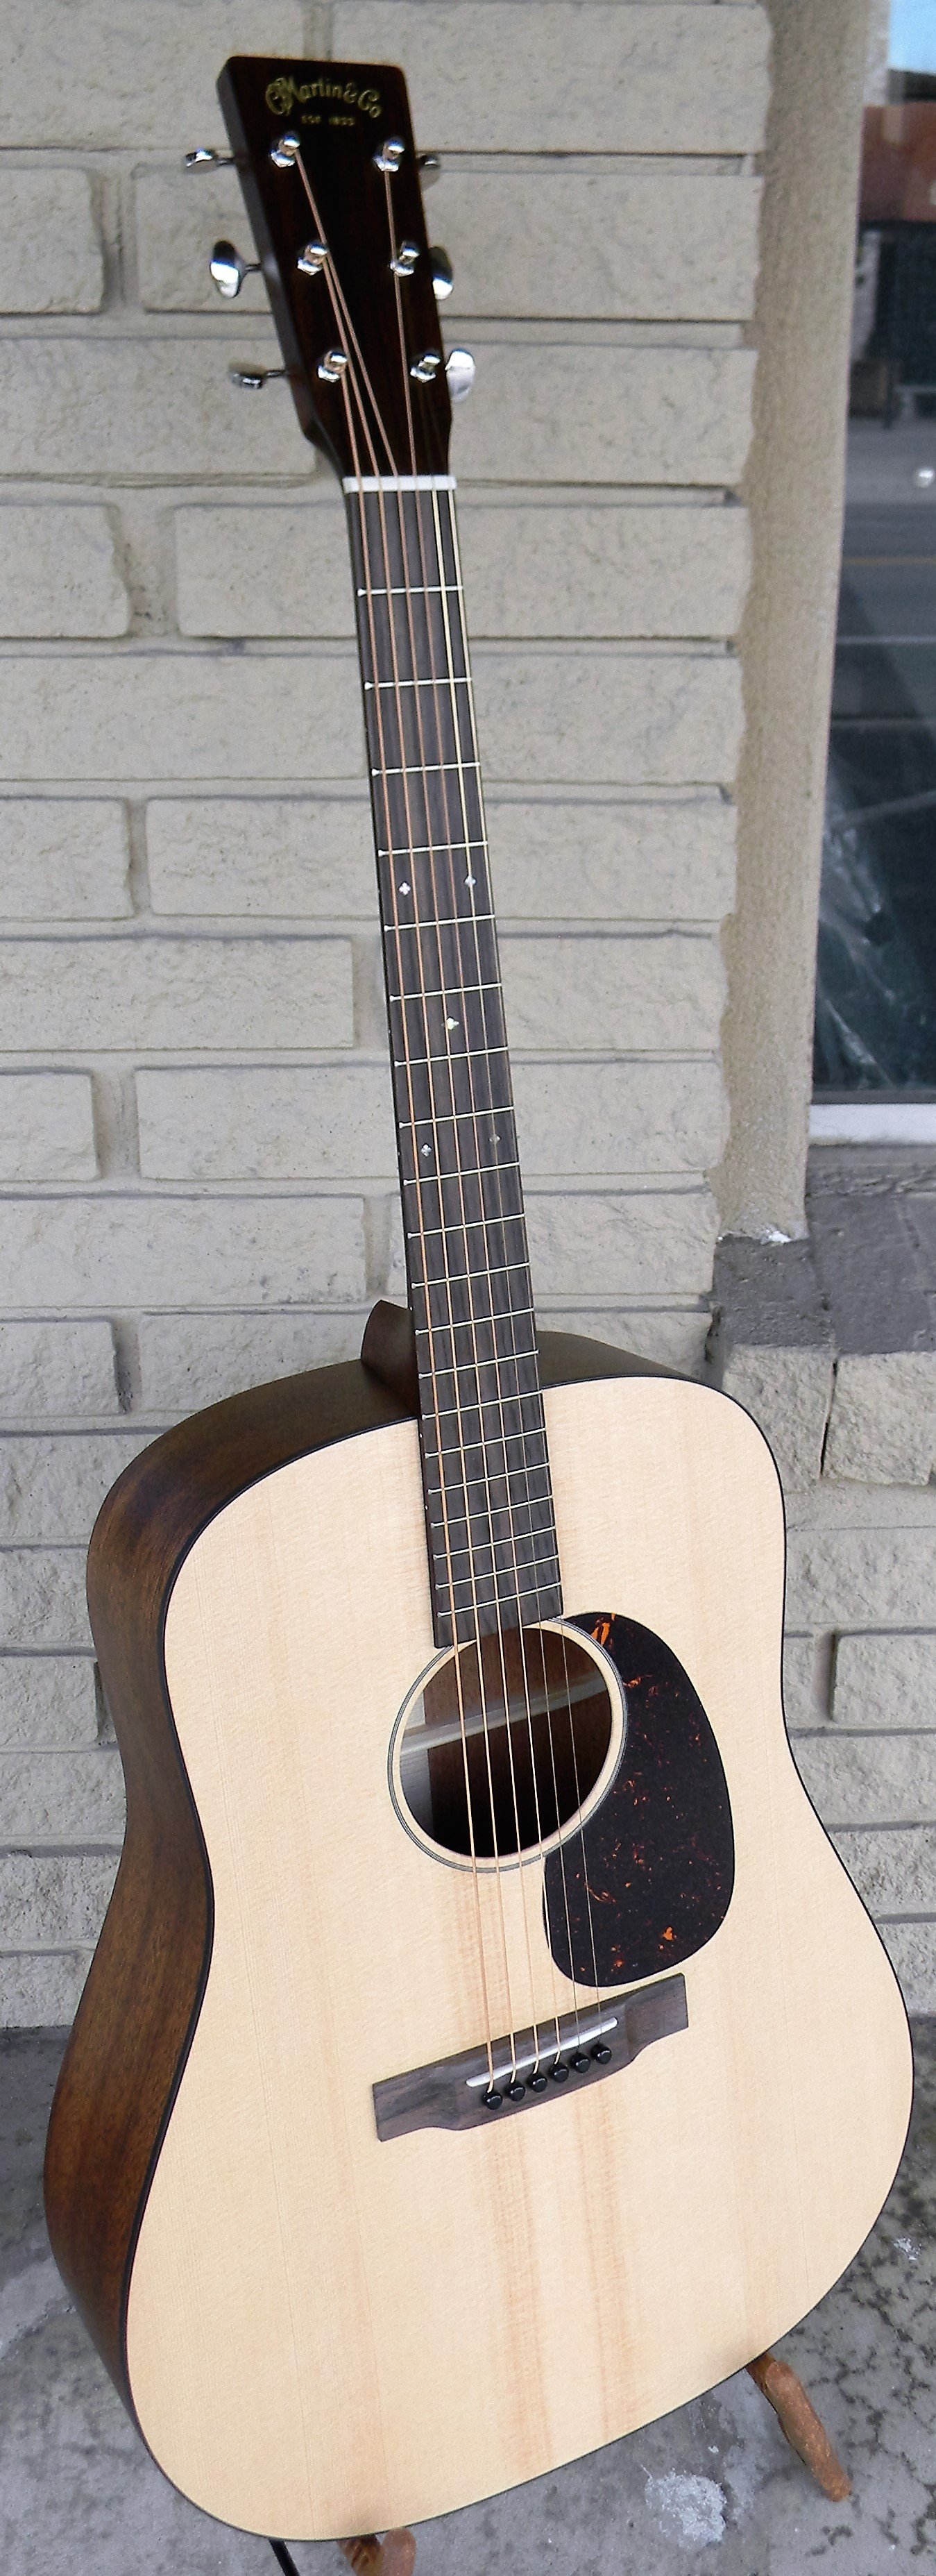 Martin D 15 Special with solid sitka spruce and mahogany, rosewood bridge and fingerboard. $1,459.00